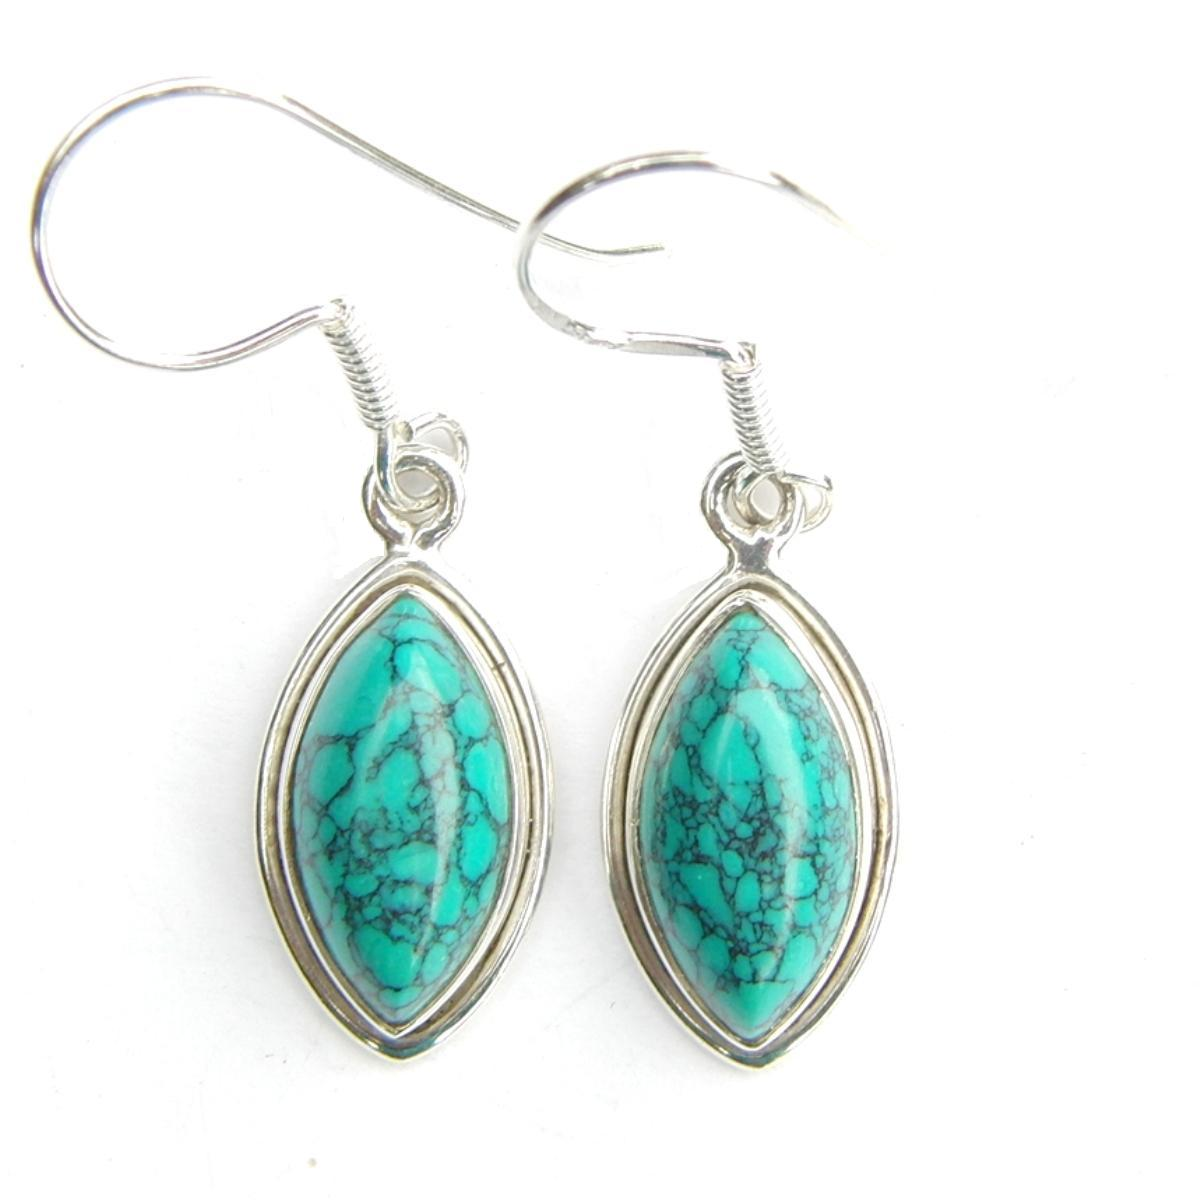 Turquoise Marquise Earrings